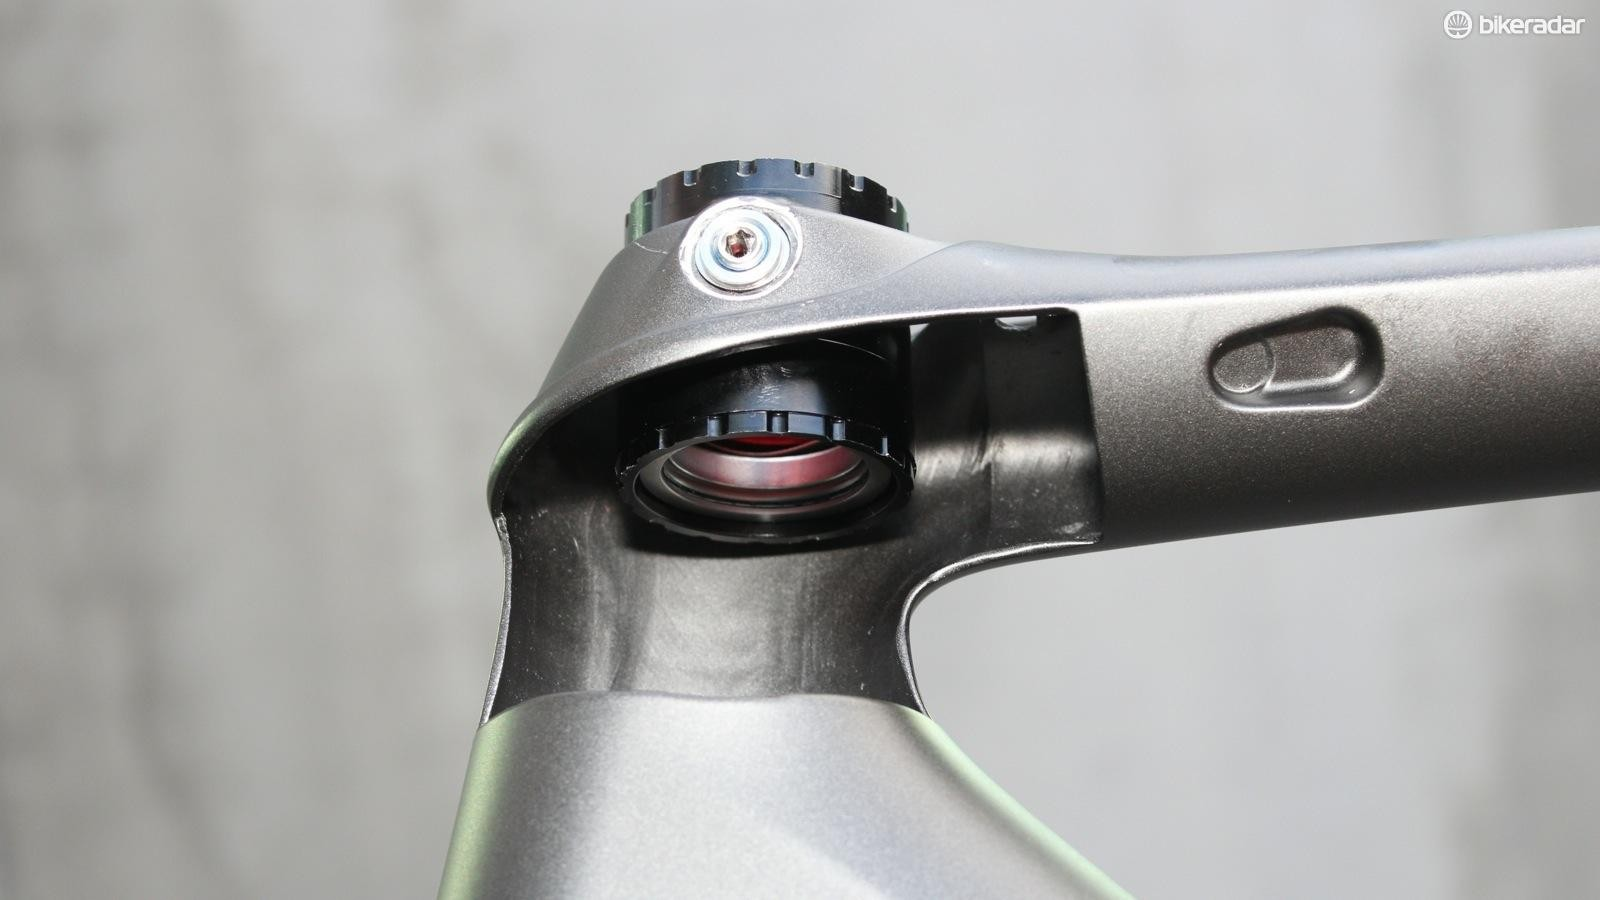 No, it doesn't feel like your headset is loose. The pivot allows for a little fore/aft bowing in the carbon steerer, without feeling sloppy or loose laterally